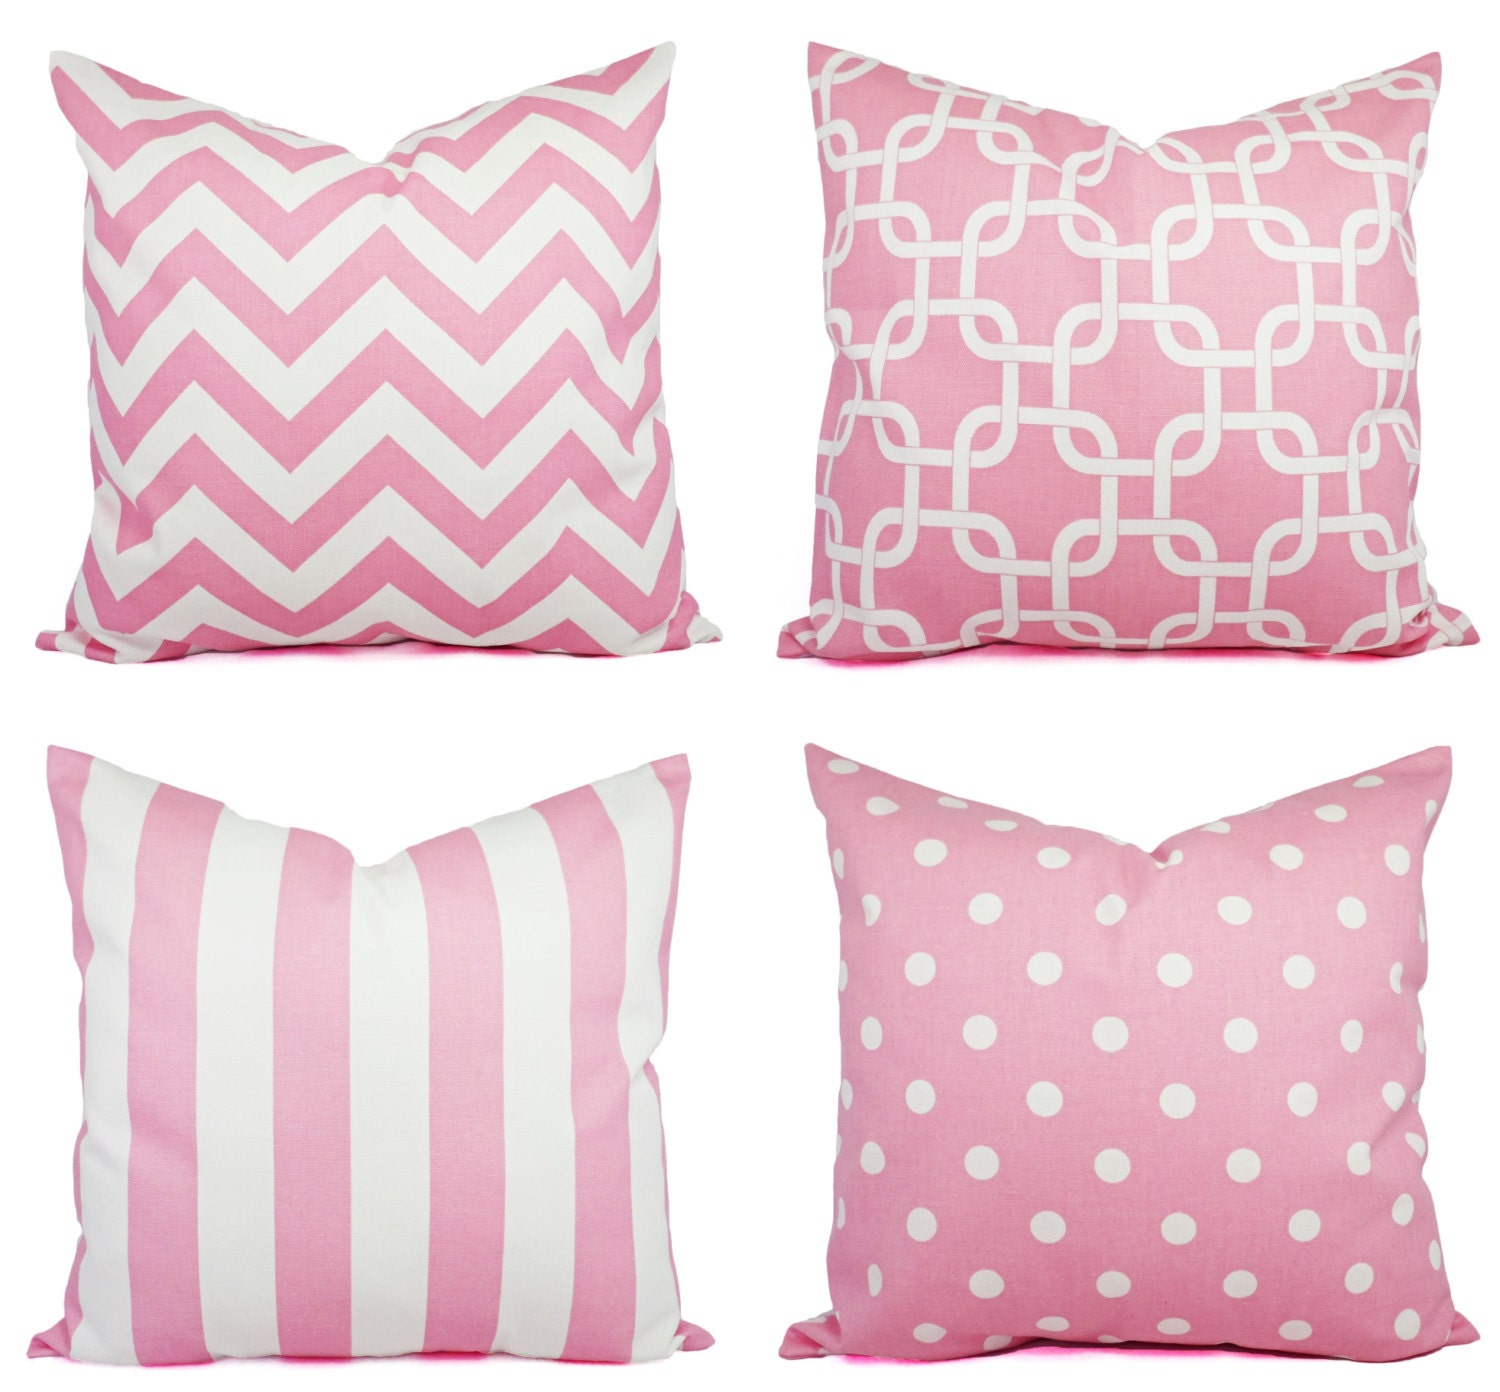 Pink Throw Pillows For Couch : Baby Pink Throw Pillow Covers Pink by CastawayCoveDecor on Etsy